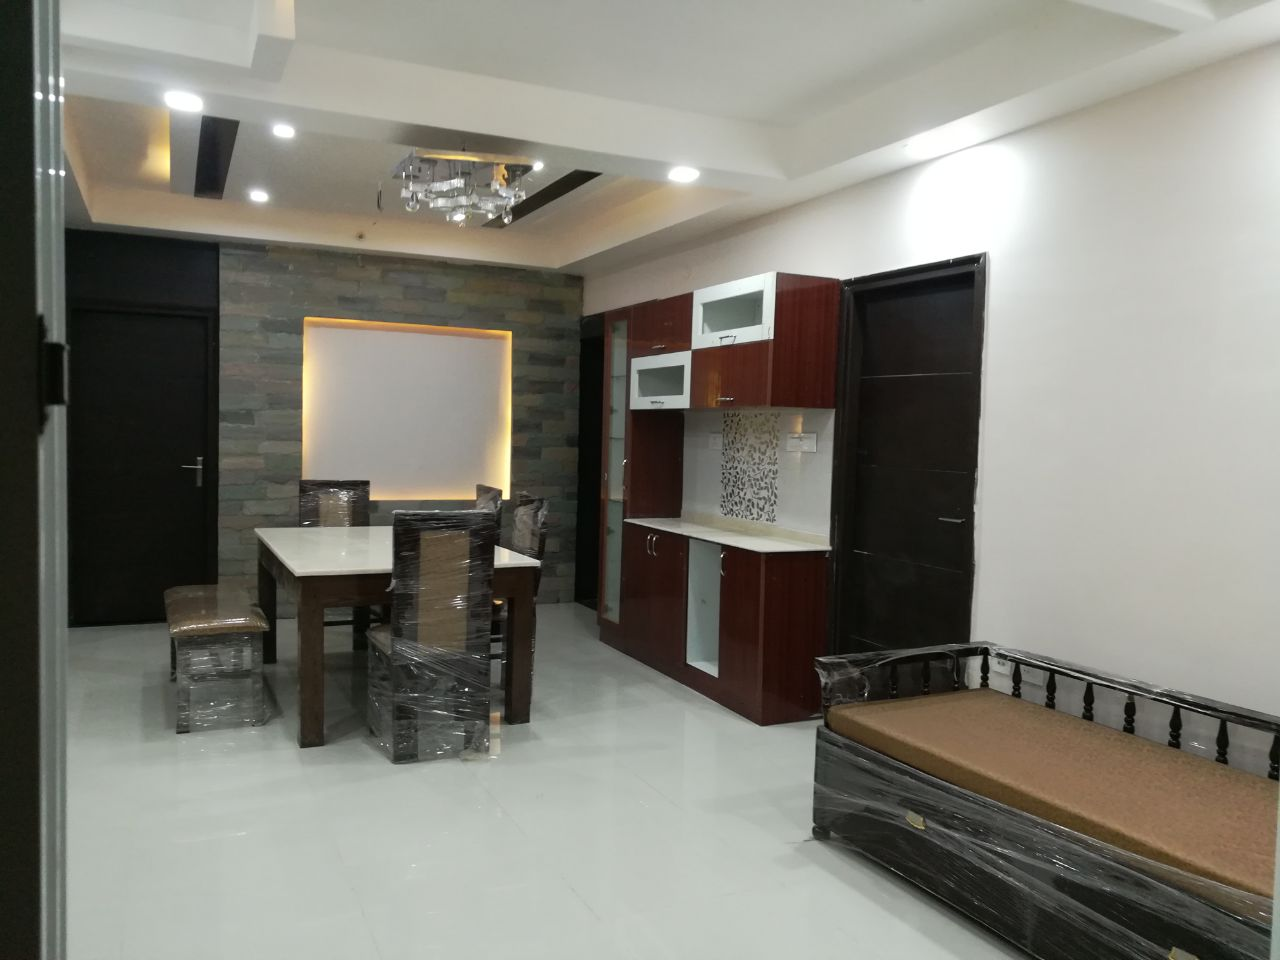 R7 INTERIORS, CHEAP AND BEST INTERIORS IN HYDERABA,CHEAP AND BEST INTERIORS IN UPPAL, CHEAP AND BEST INTERIORS IN MANIKONDA,CHEAP AND BEST INTERIORS IN TOLICHOWKI, CHEAP AND BEST INTERIORS IN L B NAGAR,